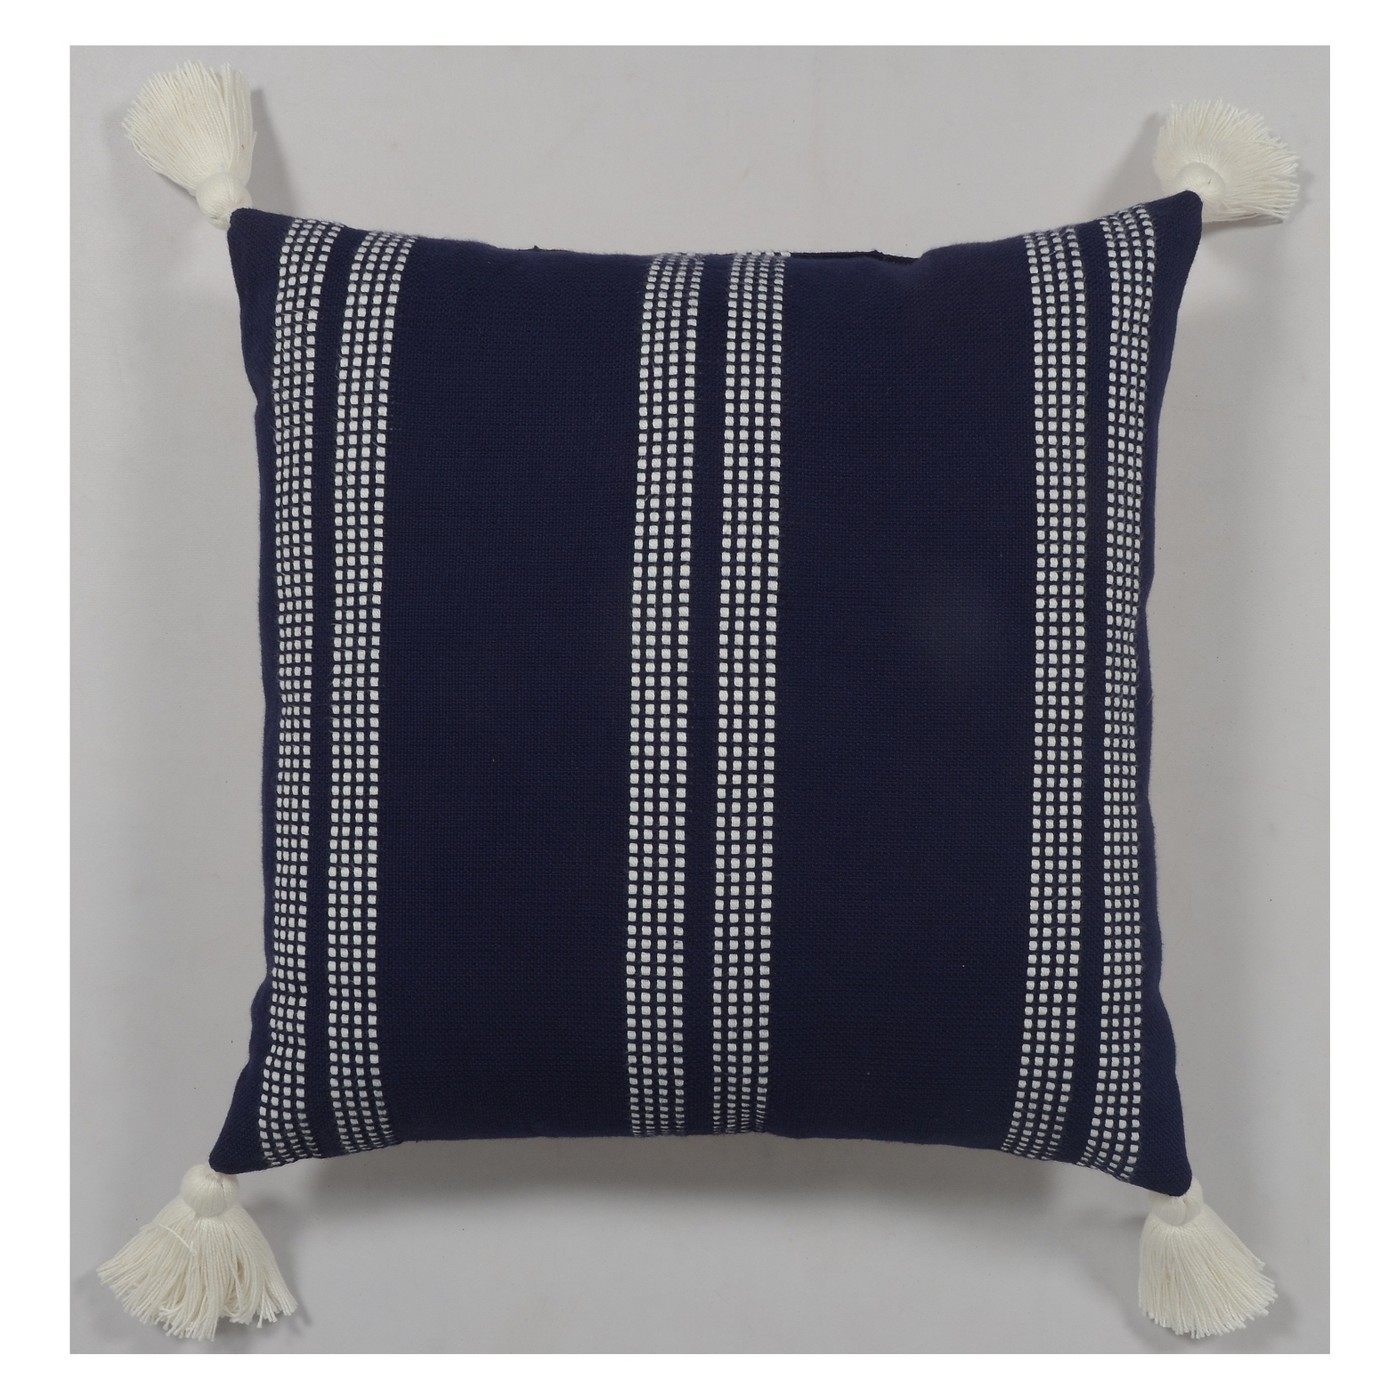 Throw Pillow with Tassels Blue - $19.99